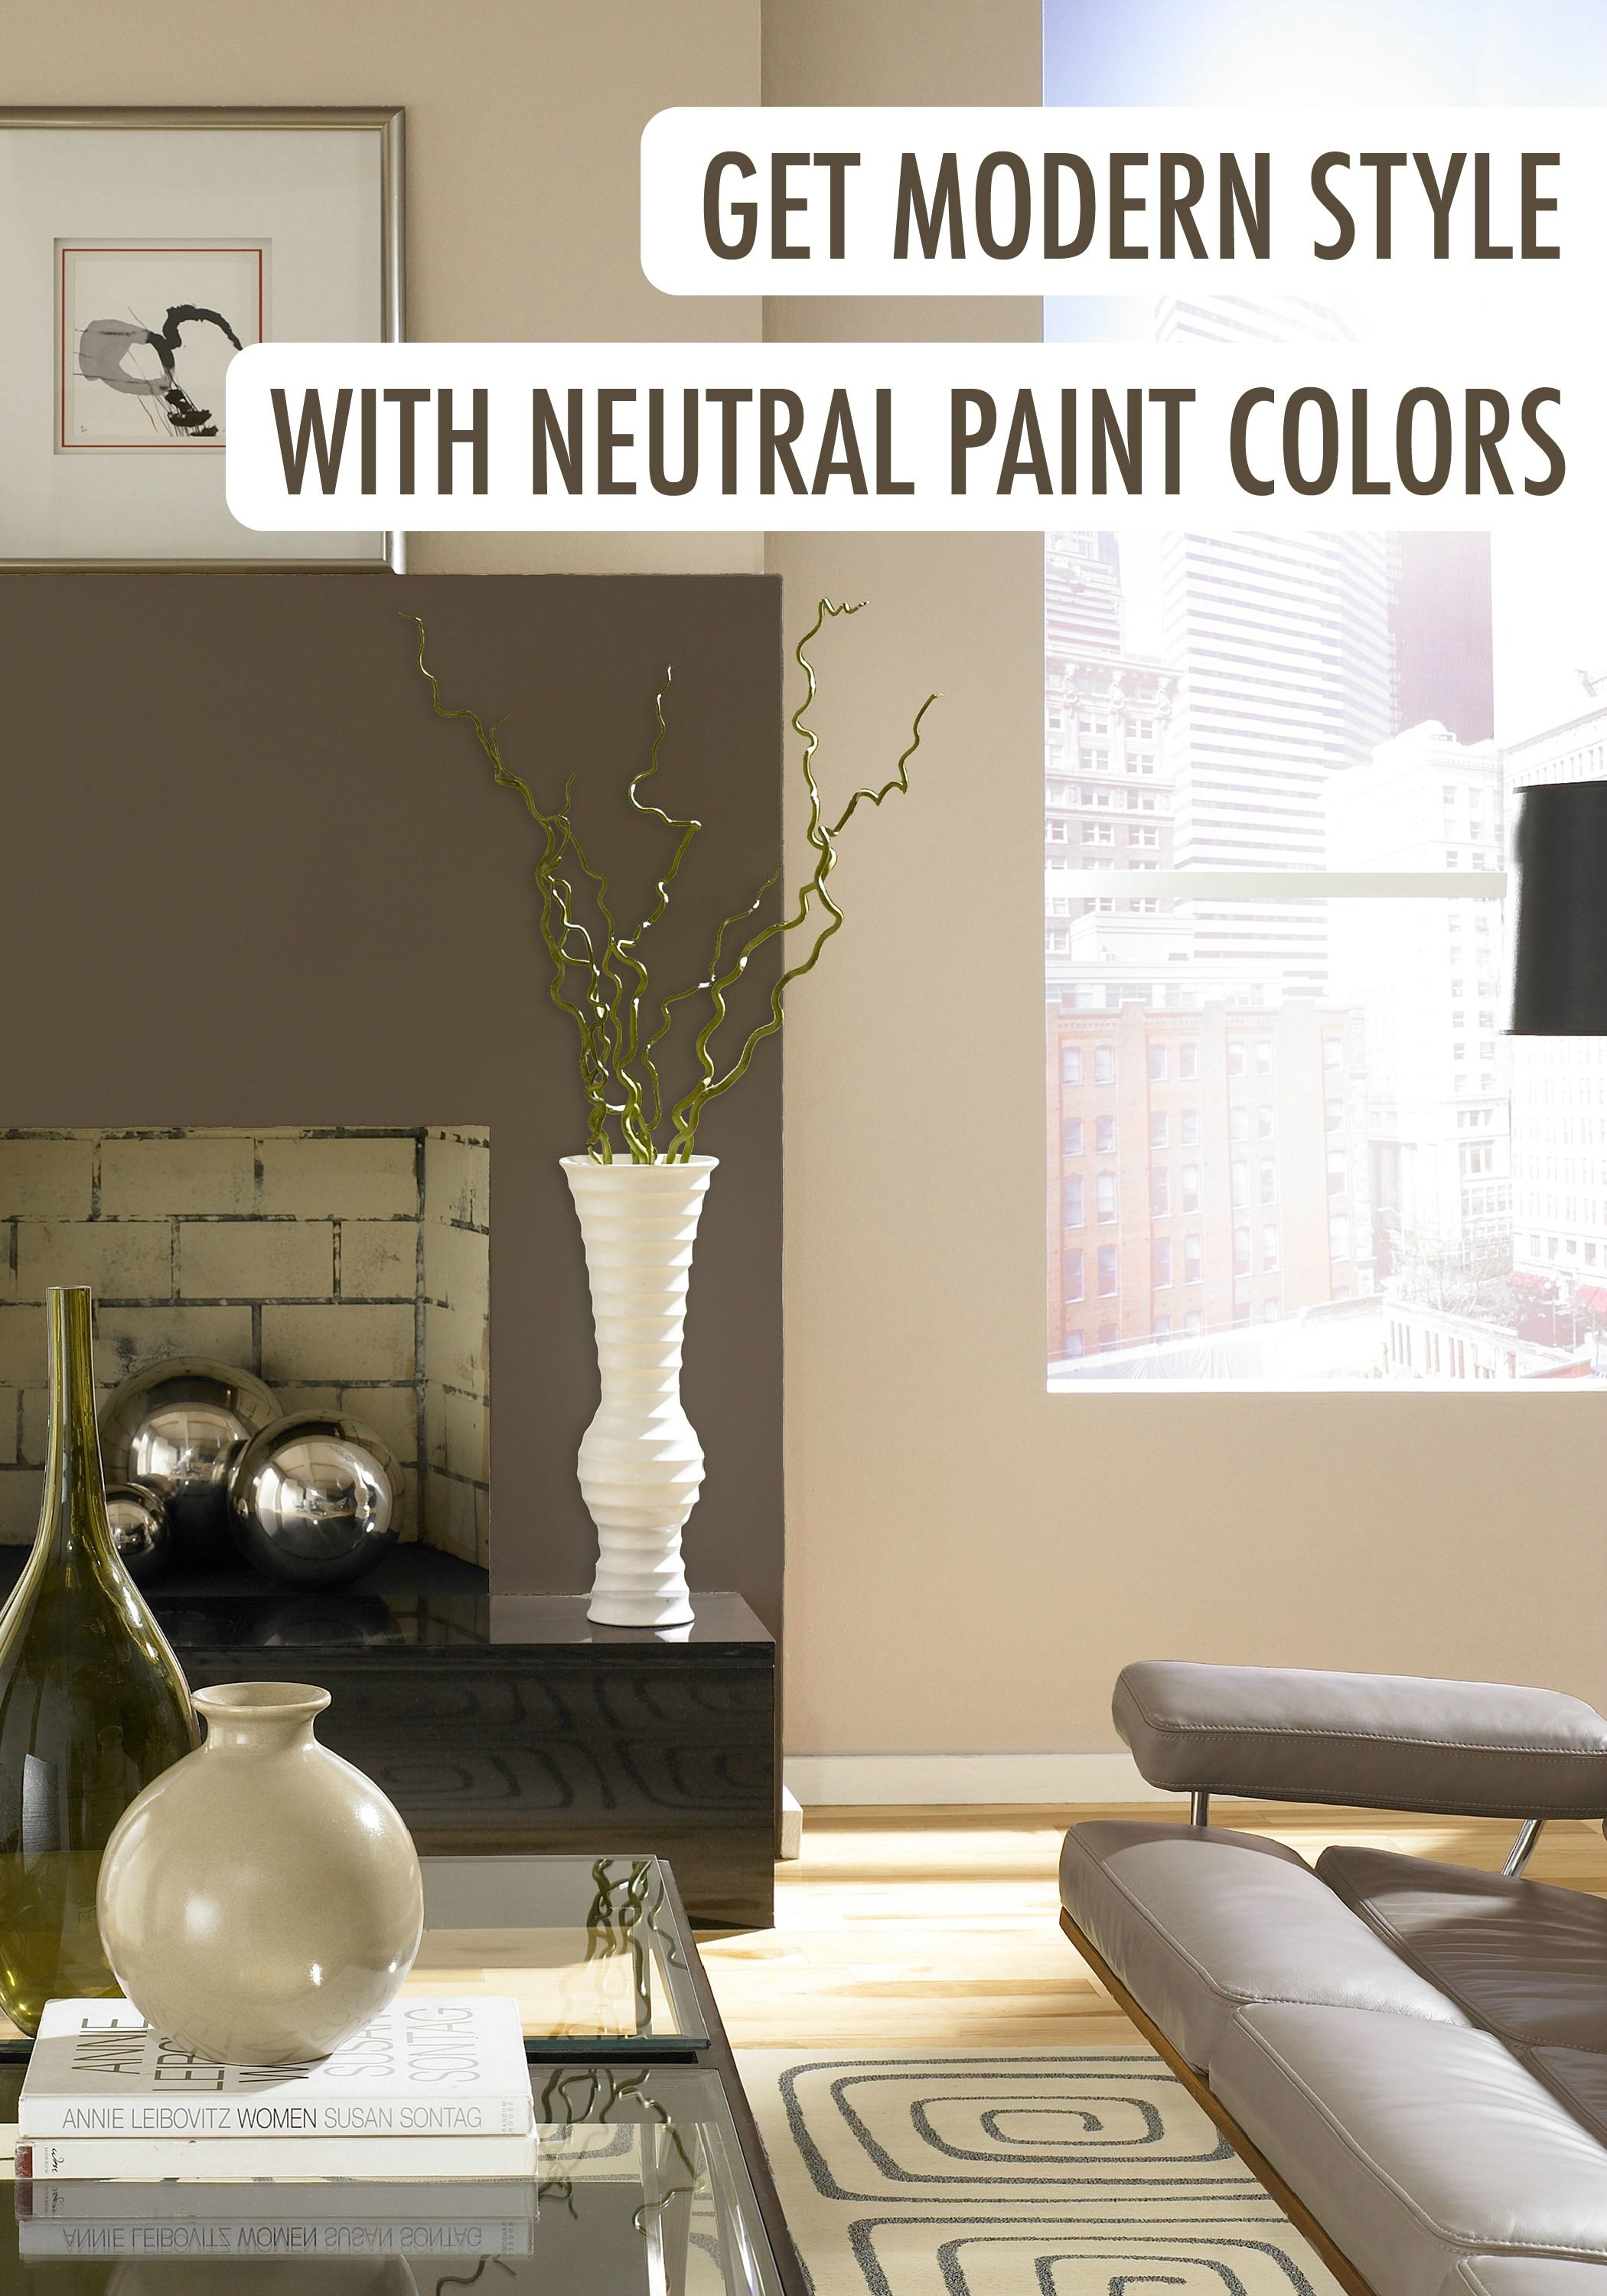 Achieving modern style with neutral paint colors is easier than ever thanks  to BEHR paint.